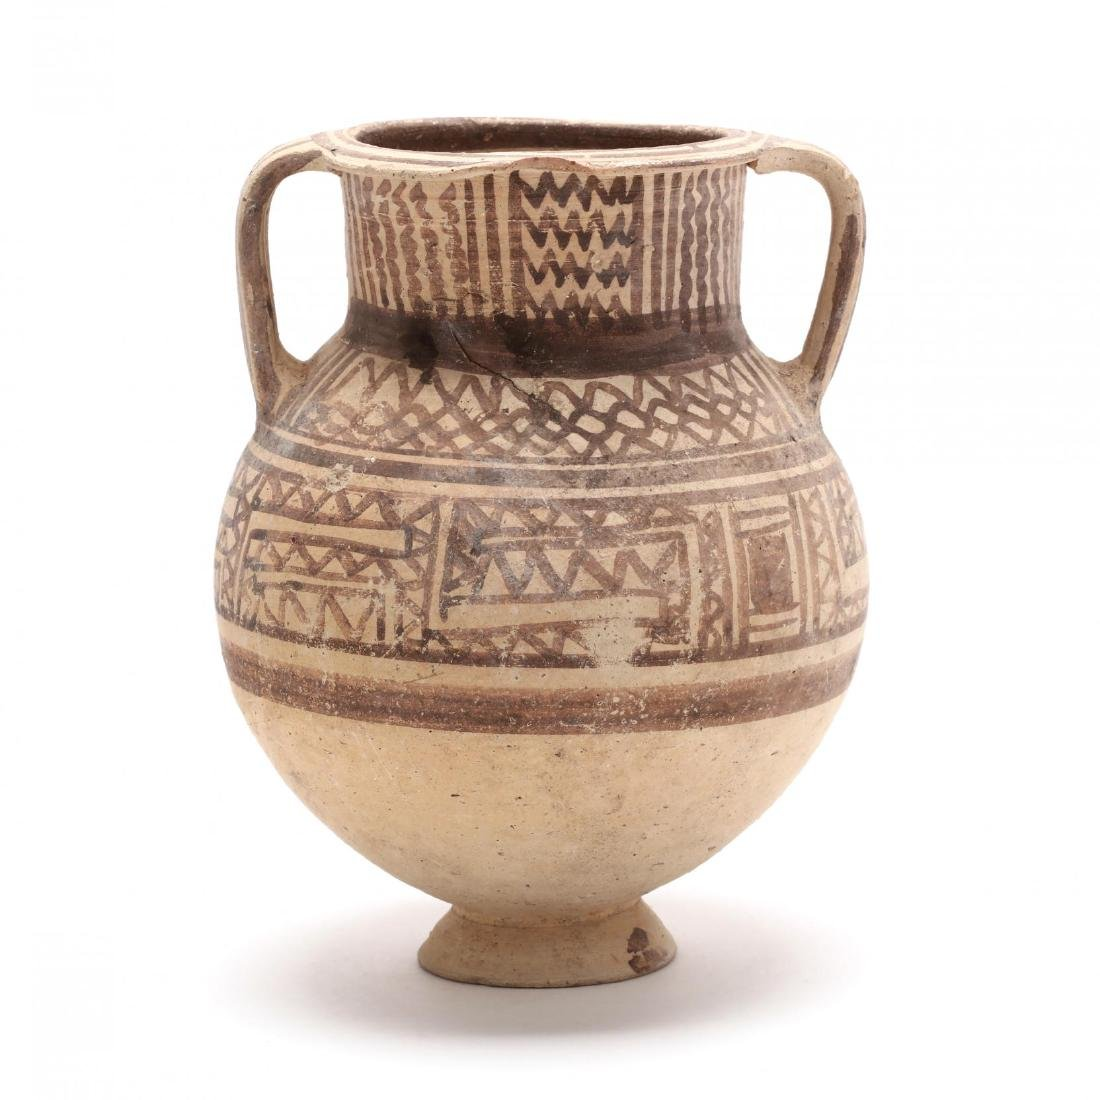 Cypriot Late Bronze Age Two-Handled Footed Amphora